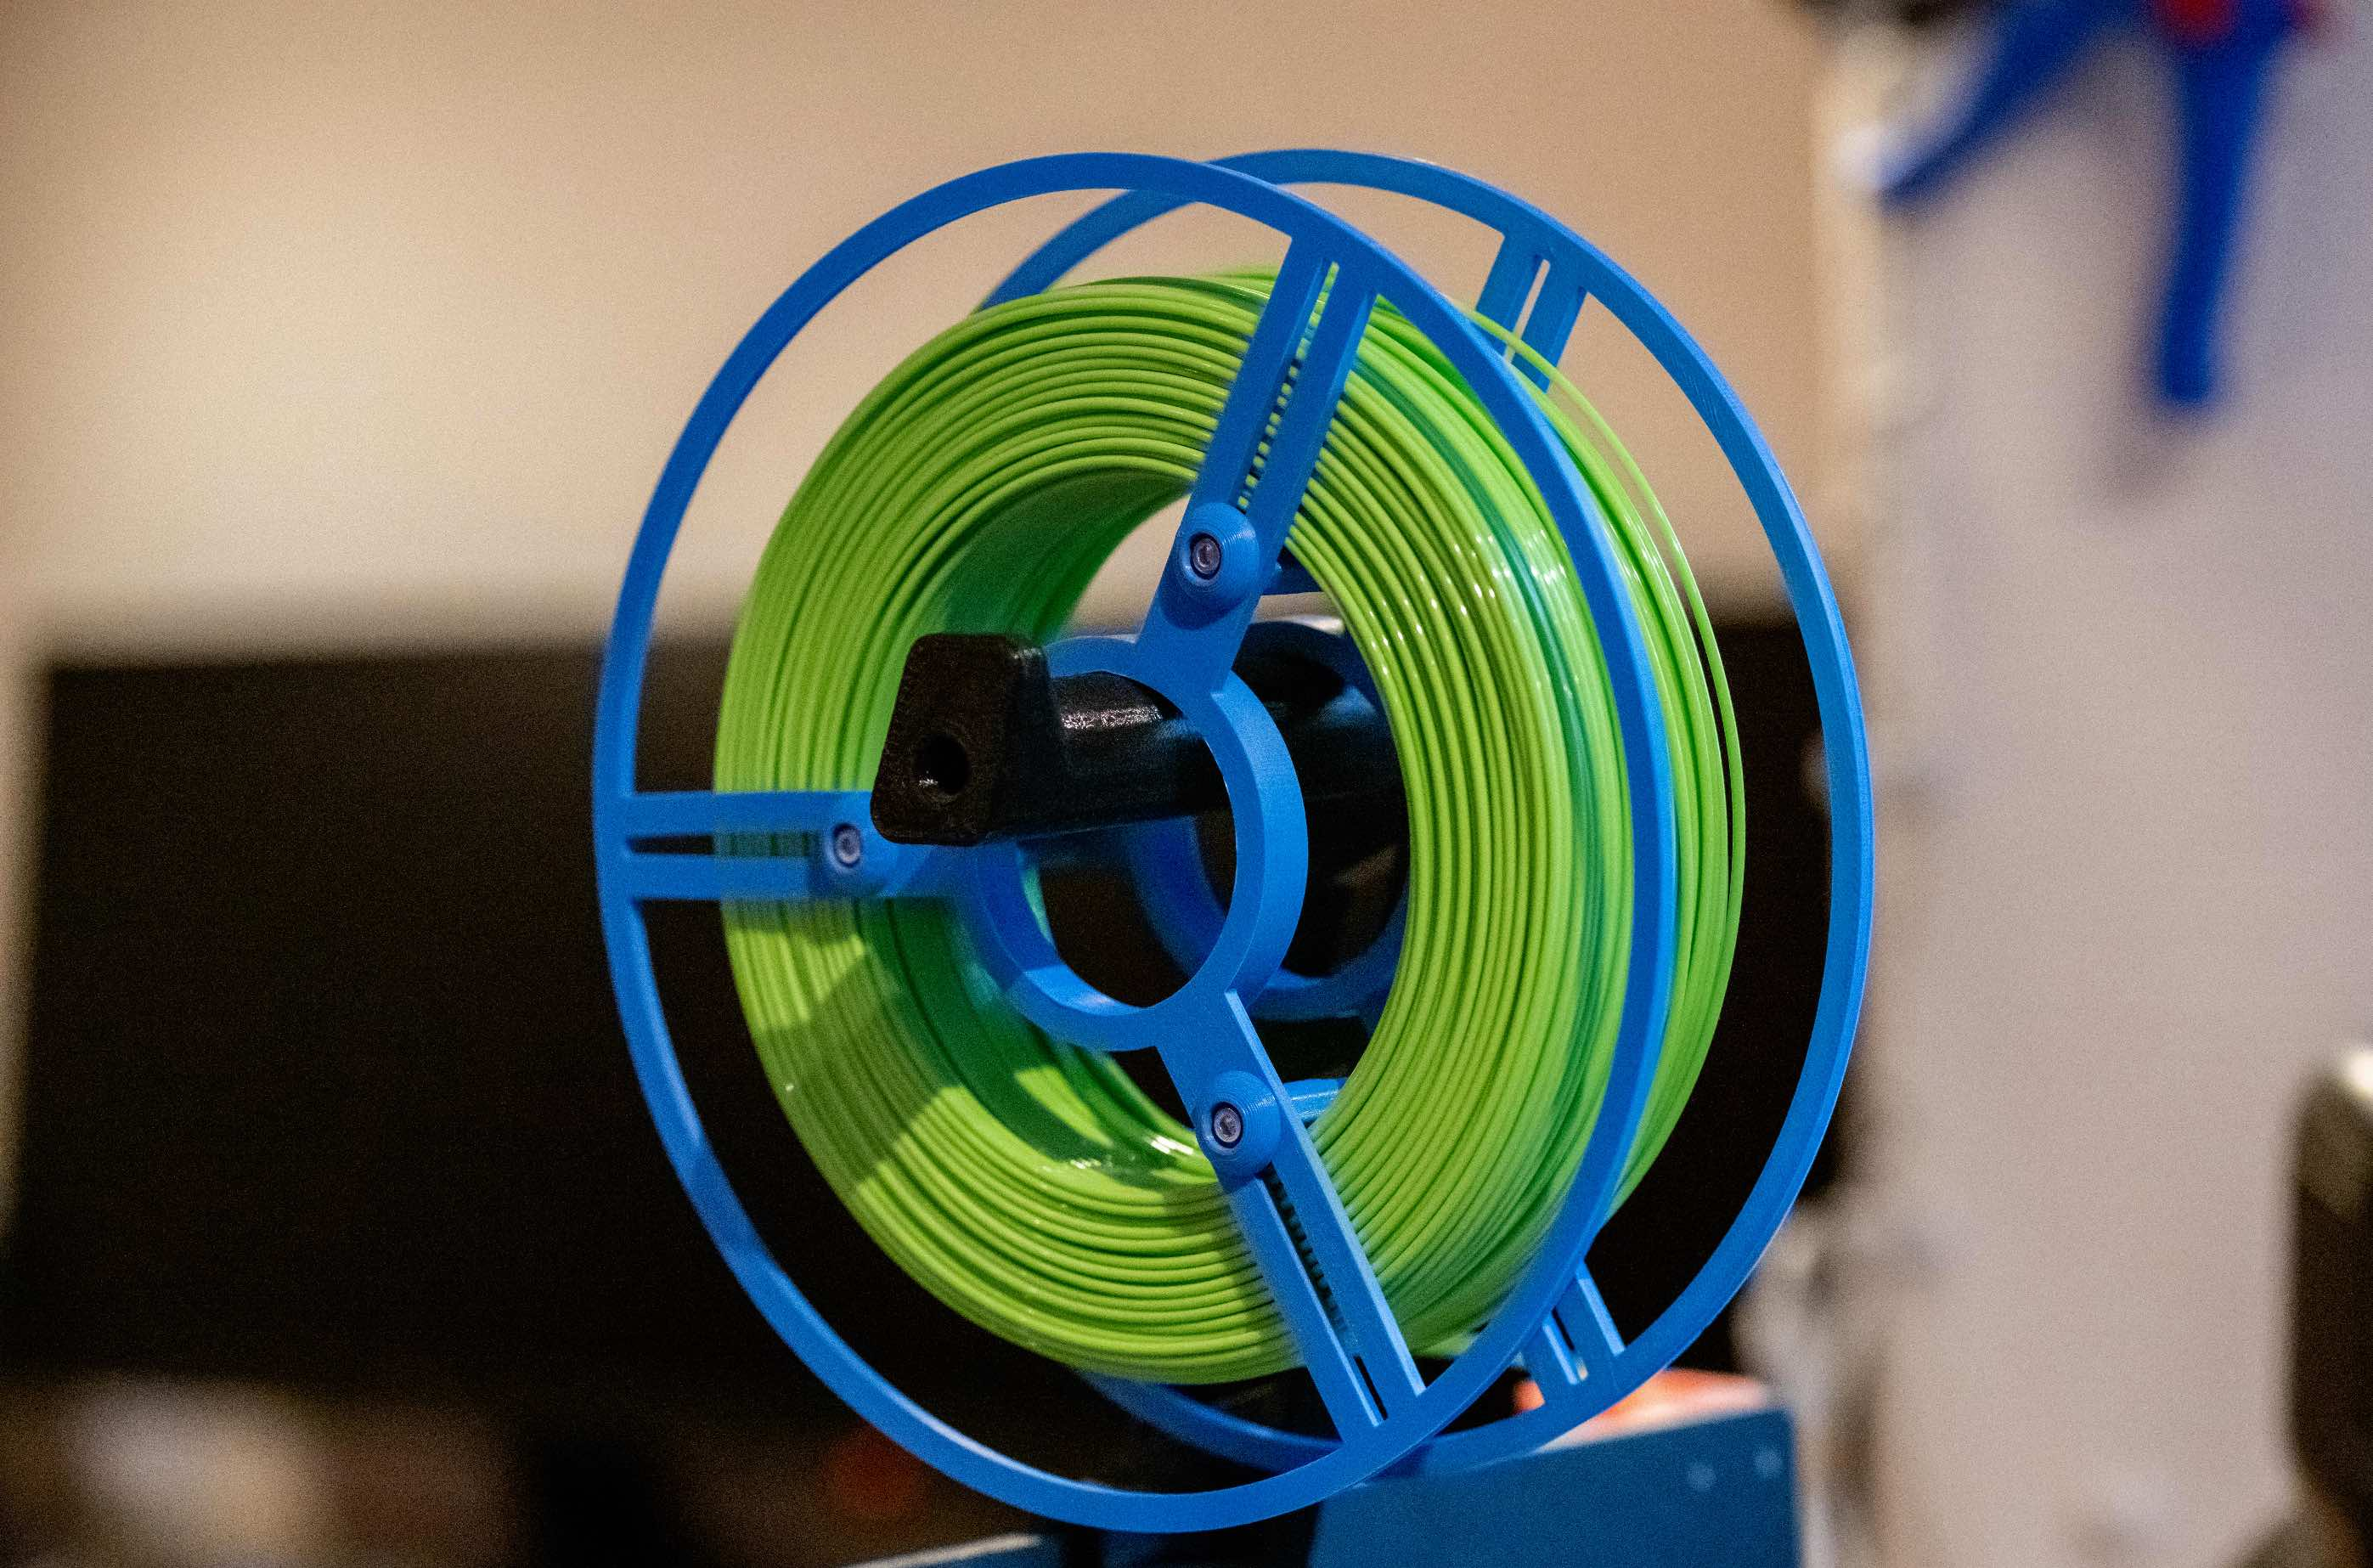 Reusable adjustable spool for spoolless filament